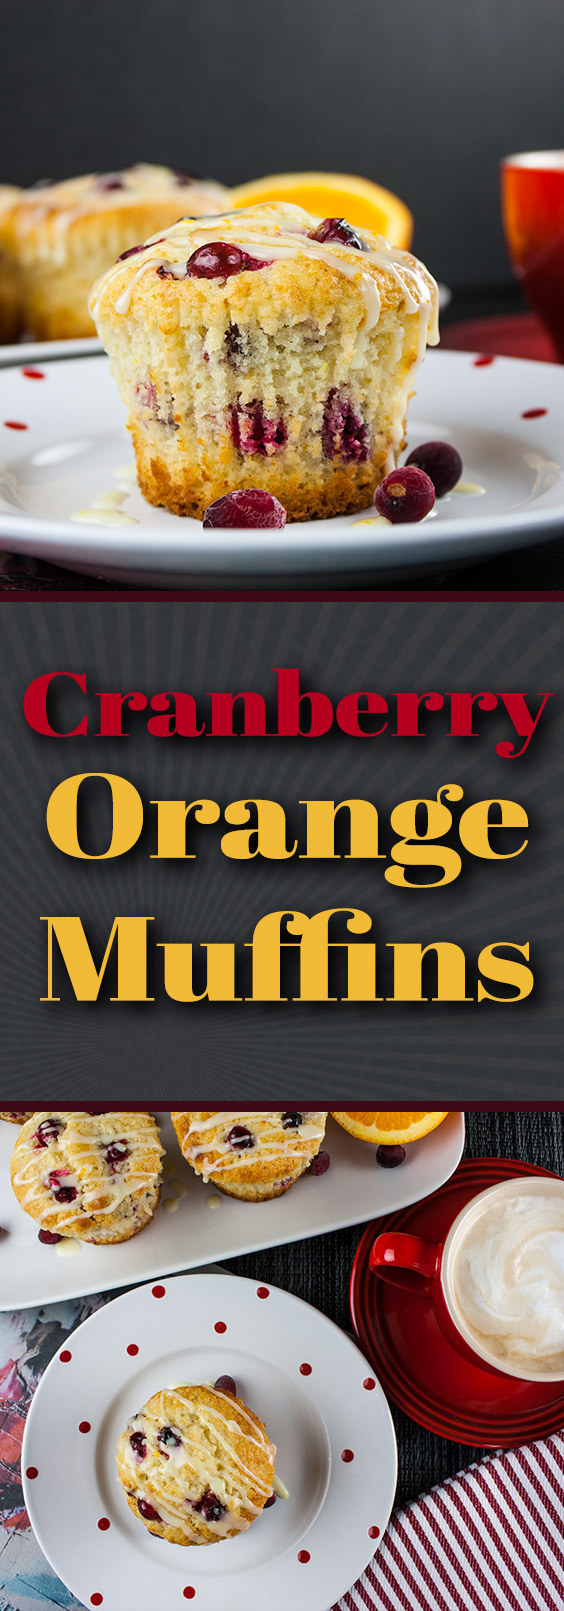 Cranberry Orange Muffins - Simply the best. A sweet buttery muffin filled with tart, juicy cranberries, orange zest, and an orange glaze. #breakfast #easy #recipe #christmas #thanksgiving #holidays